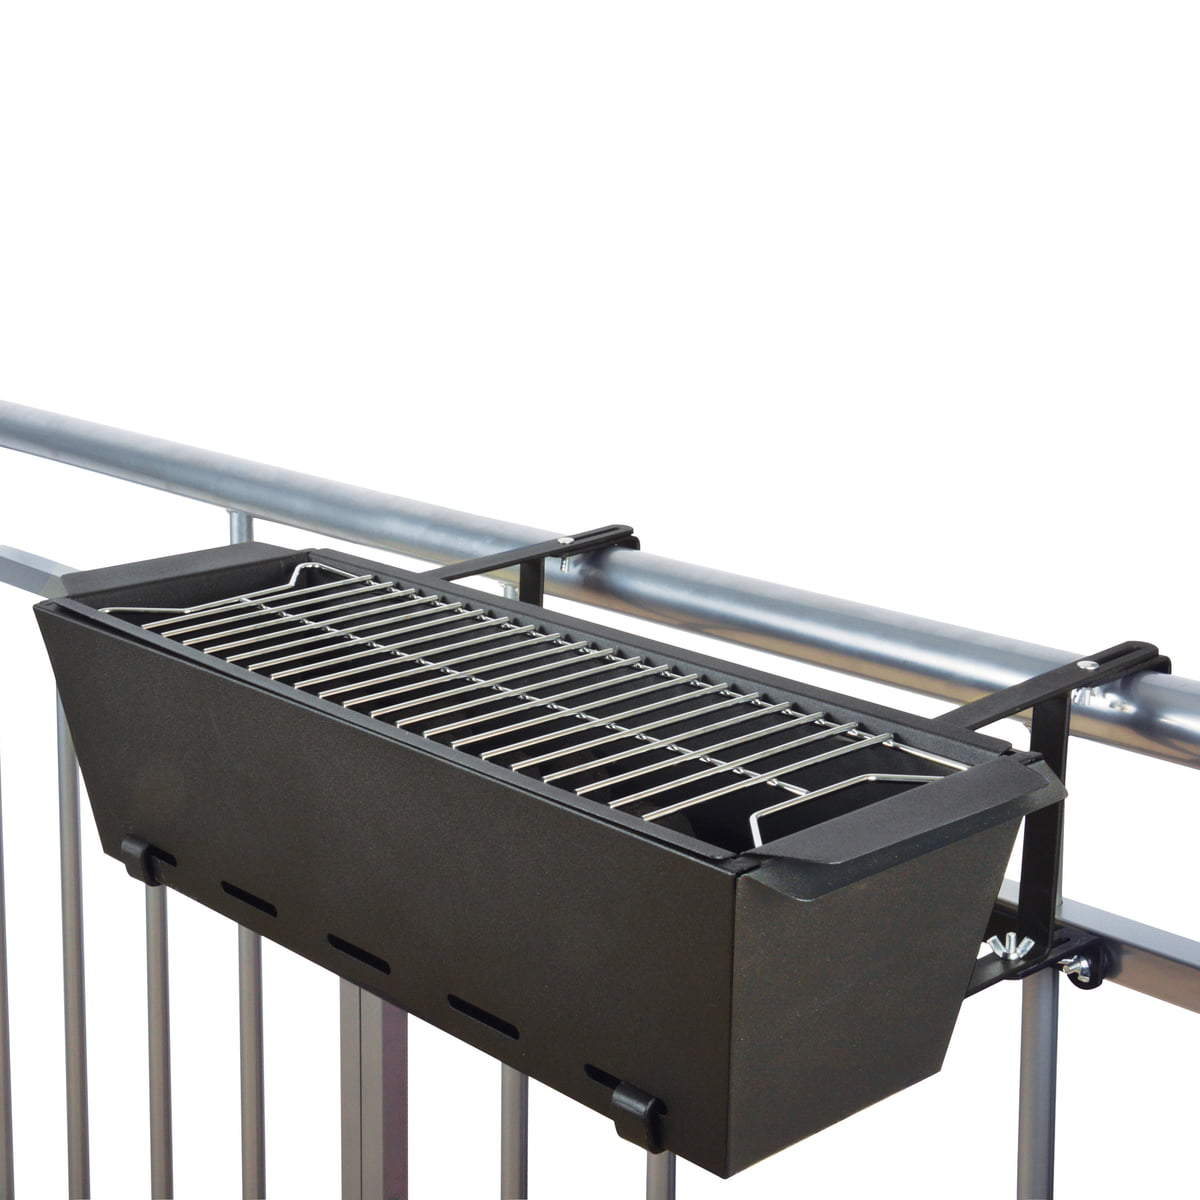 bbq bruce balcony handrail grill in the shop. Black Bedroom Furniture Sets. Home Design Ideas